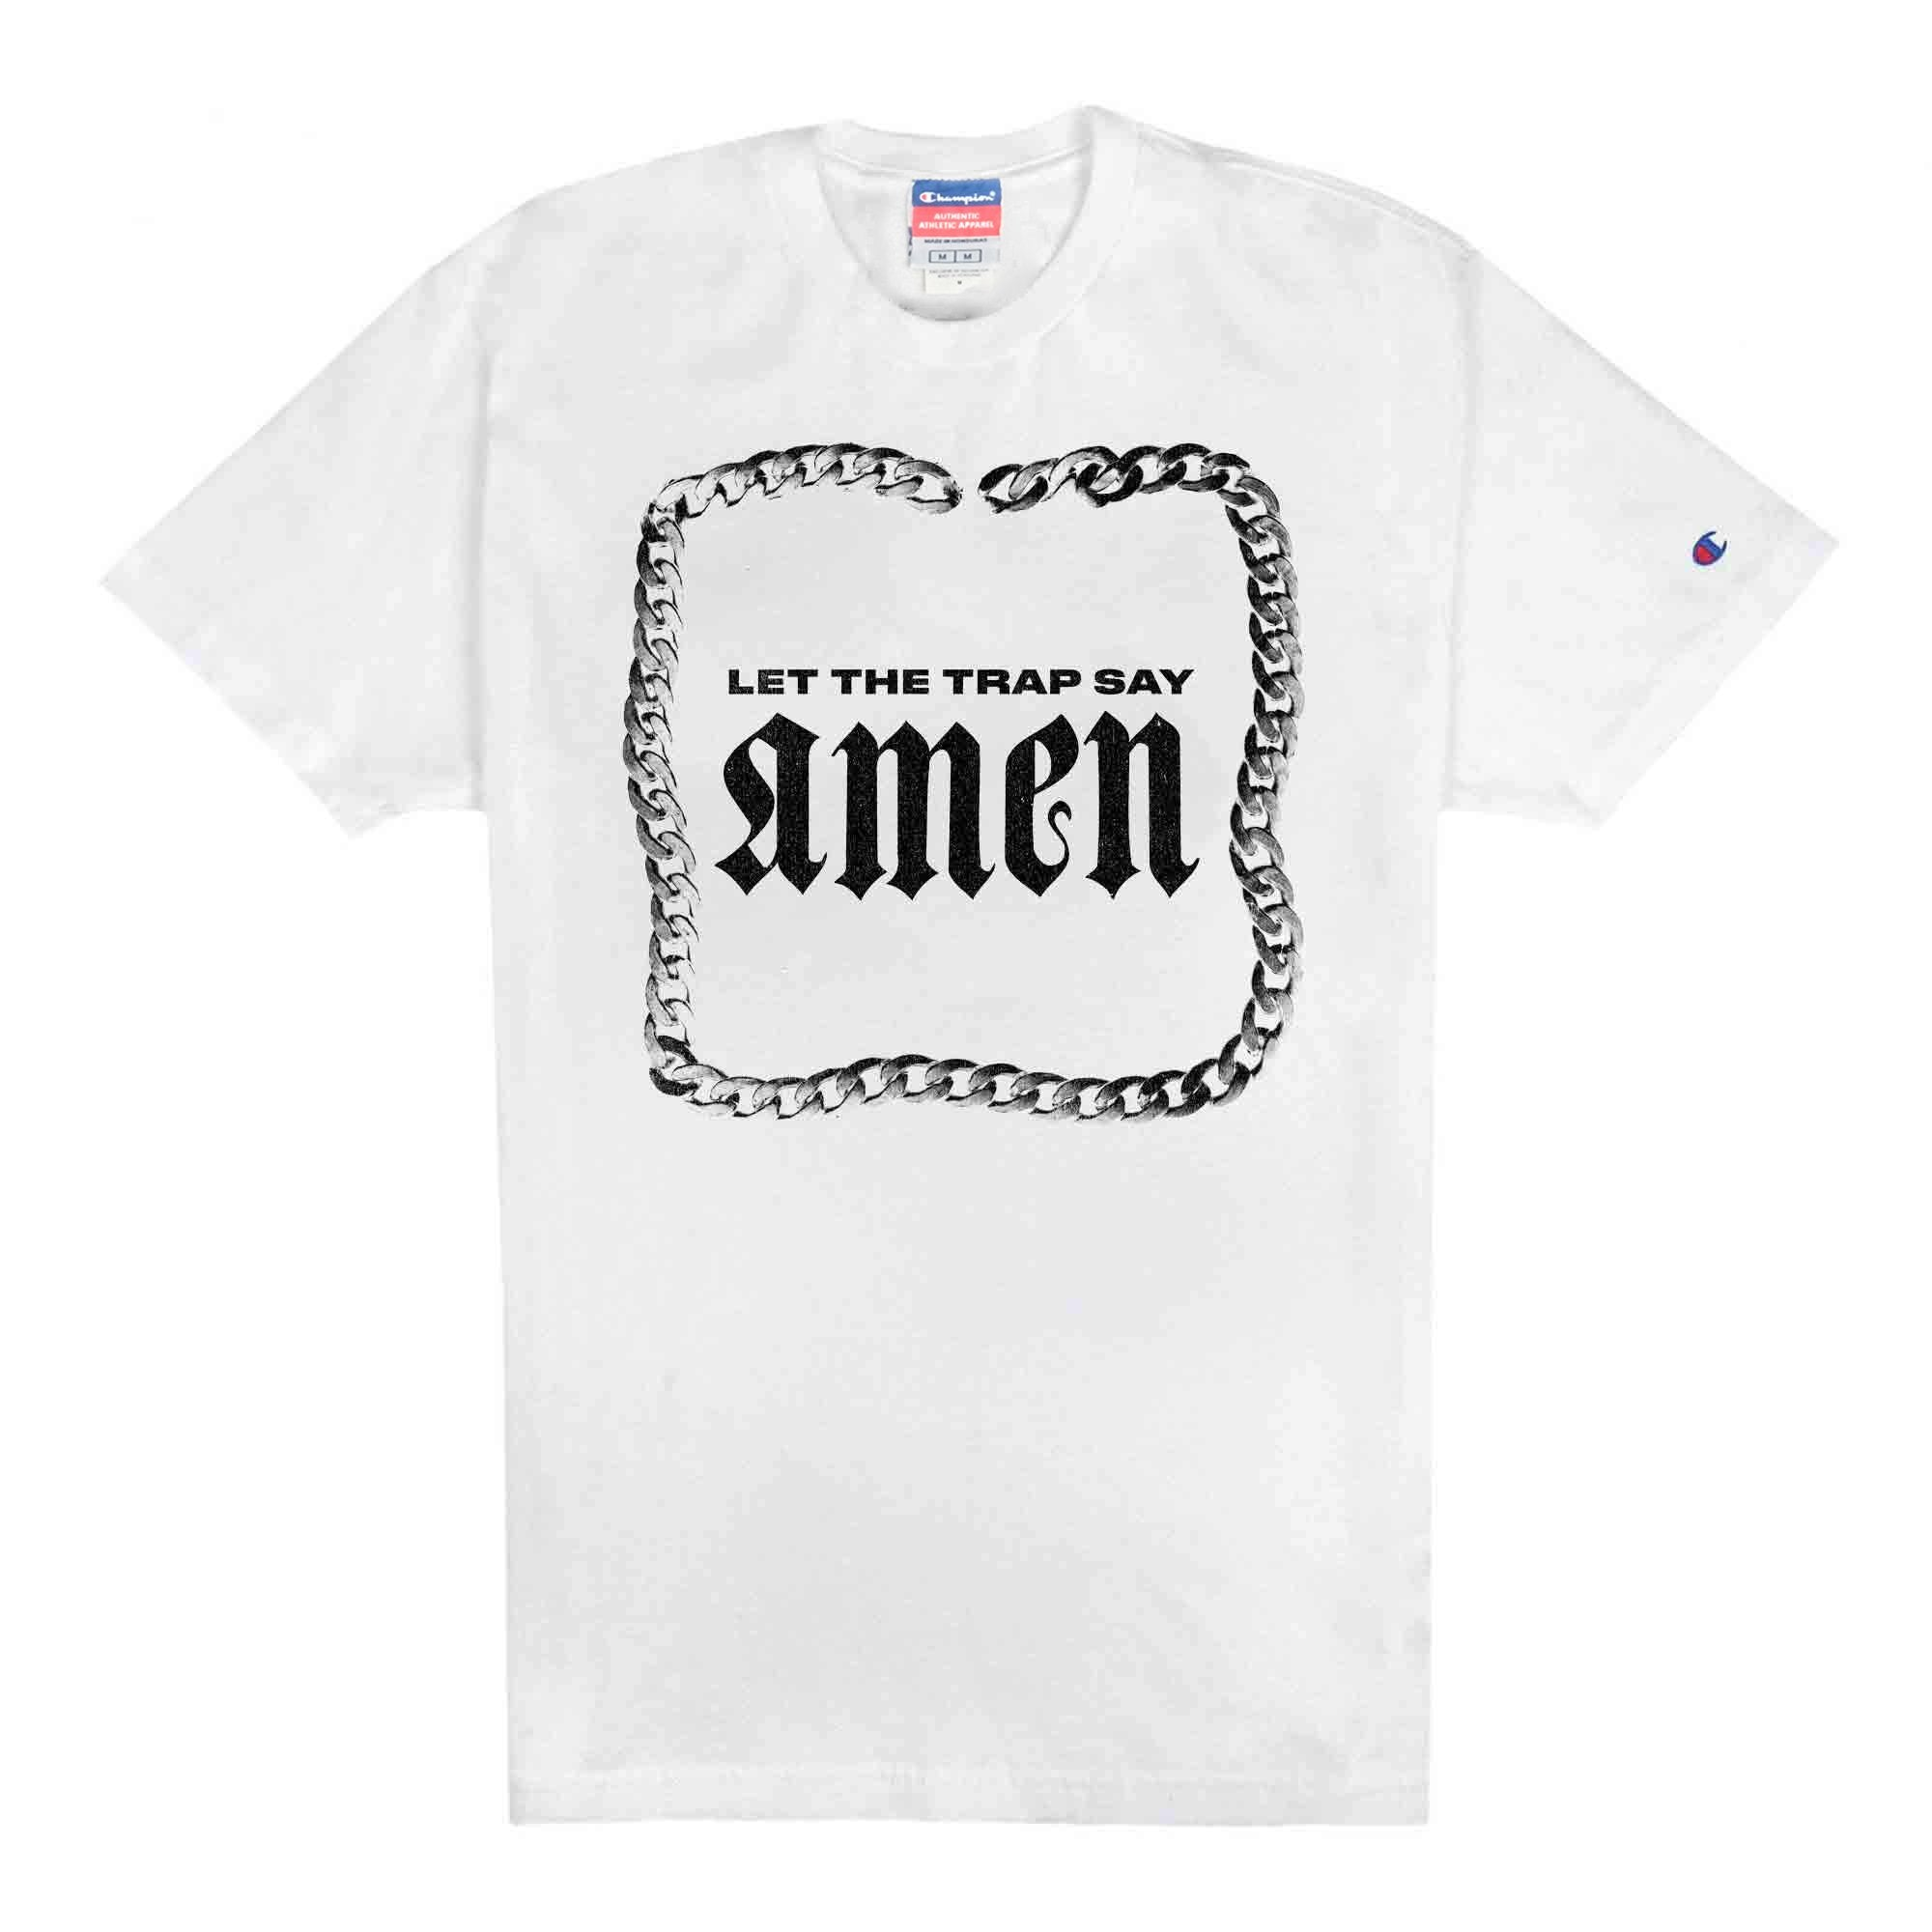 Lecrae x Champion 'Let The Trap Say Amen' T-Shirt